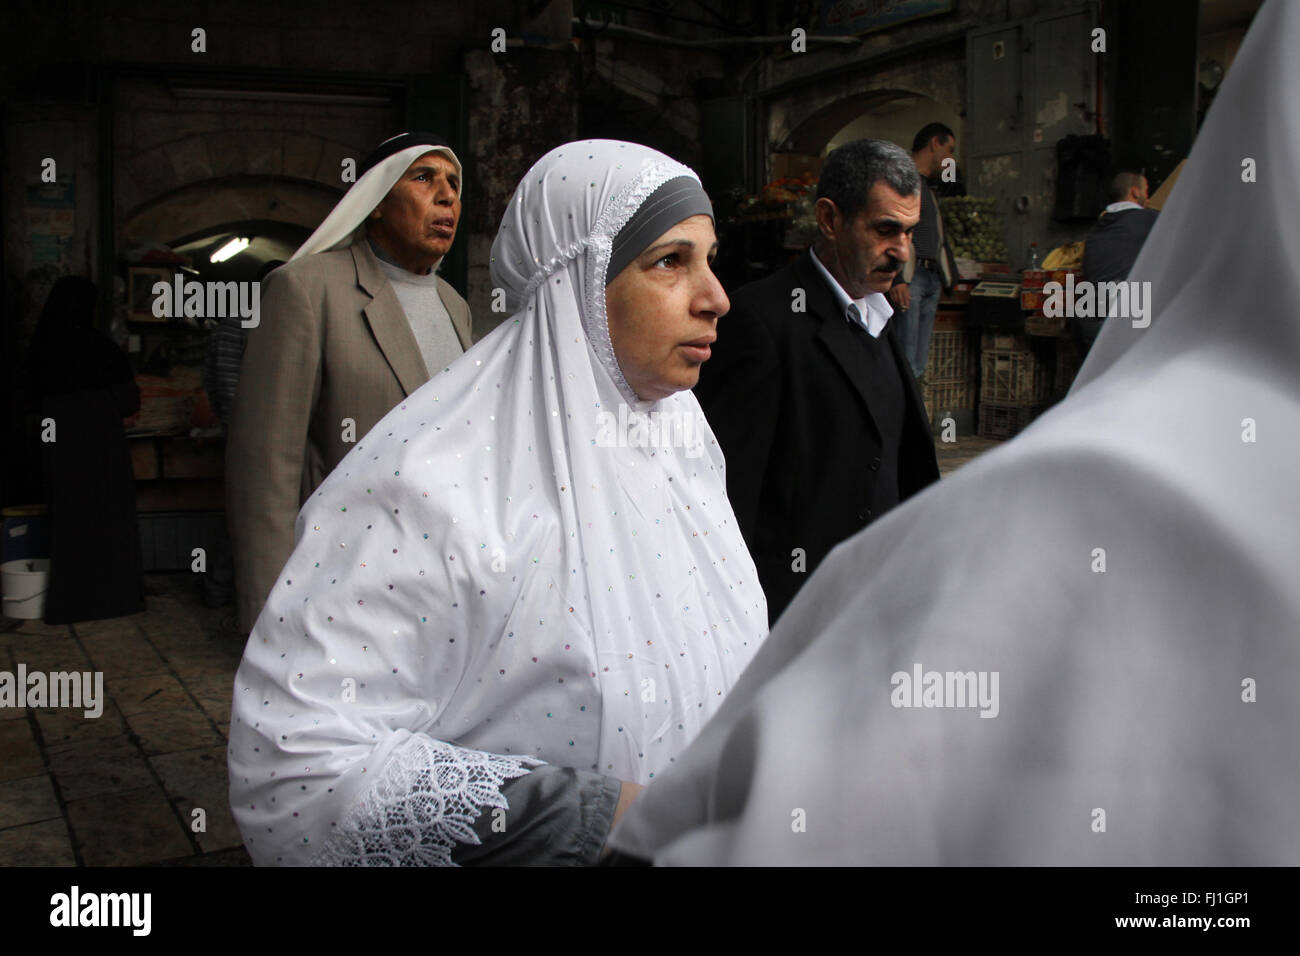 Arab people / crowd at the Damascus gate , Jerusalem old city , Israel - Stock Image